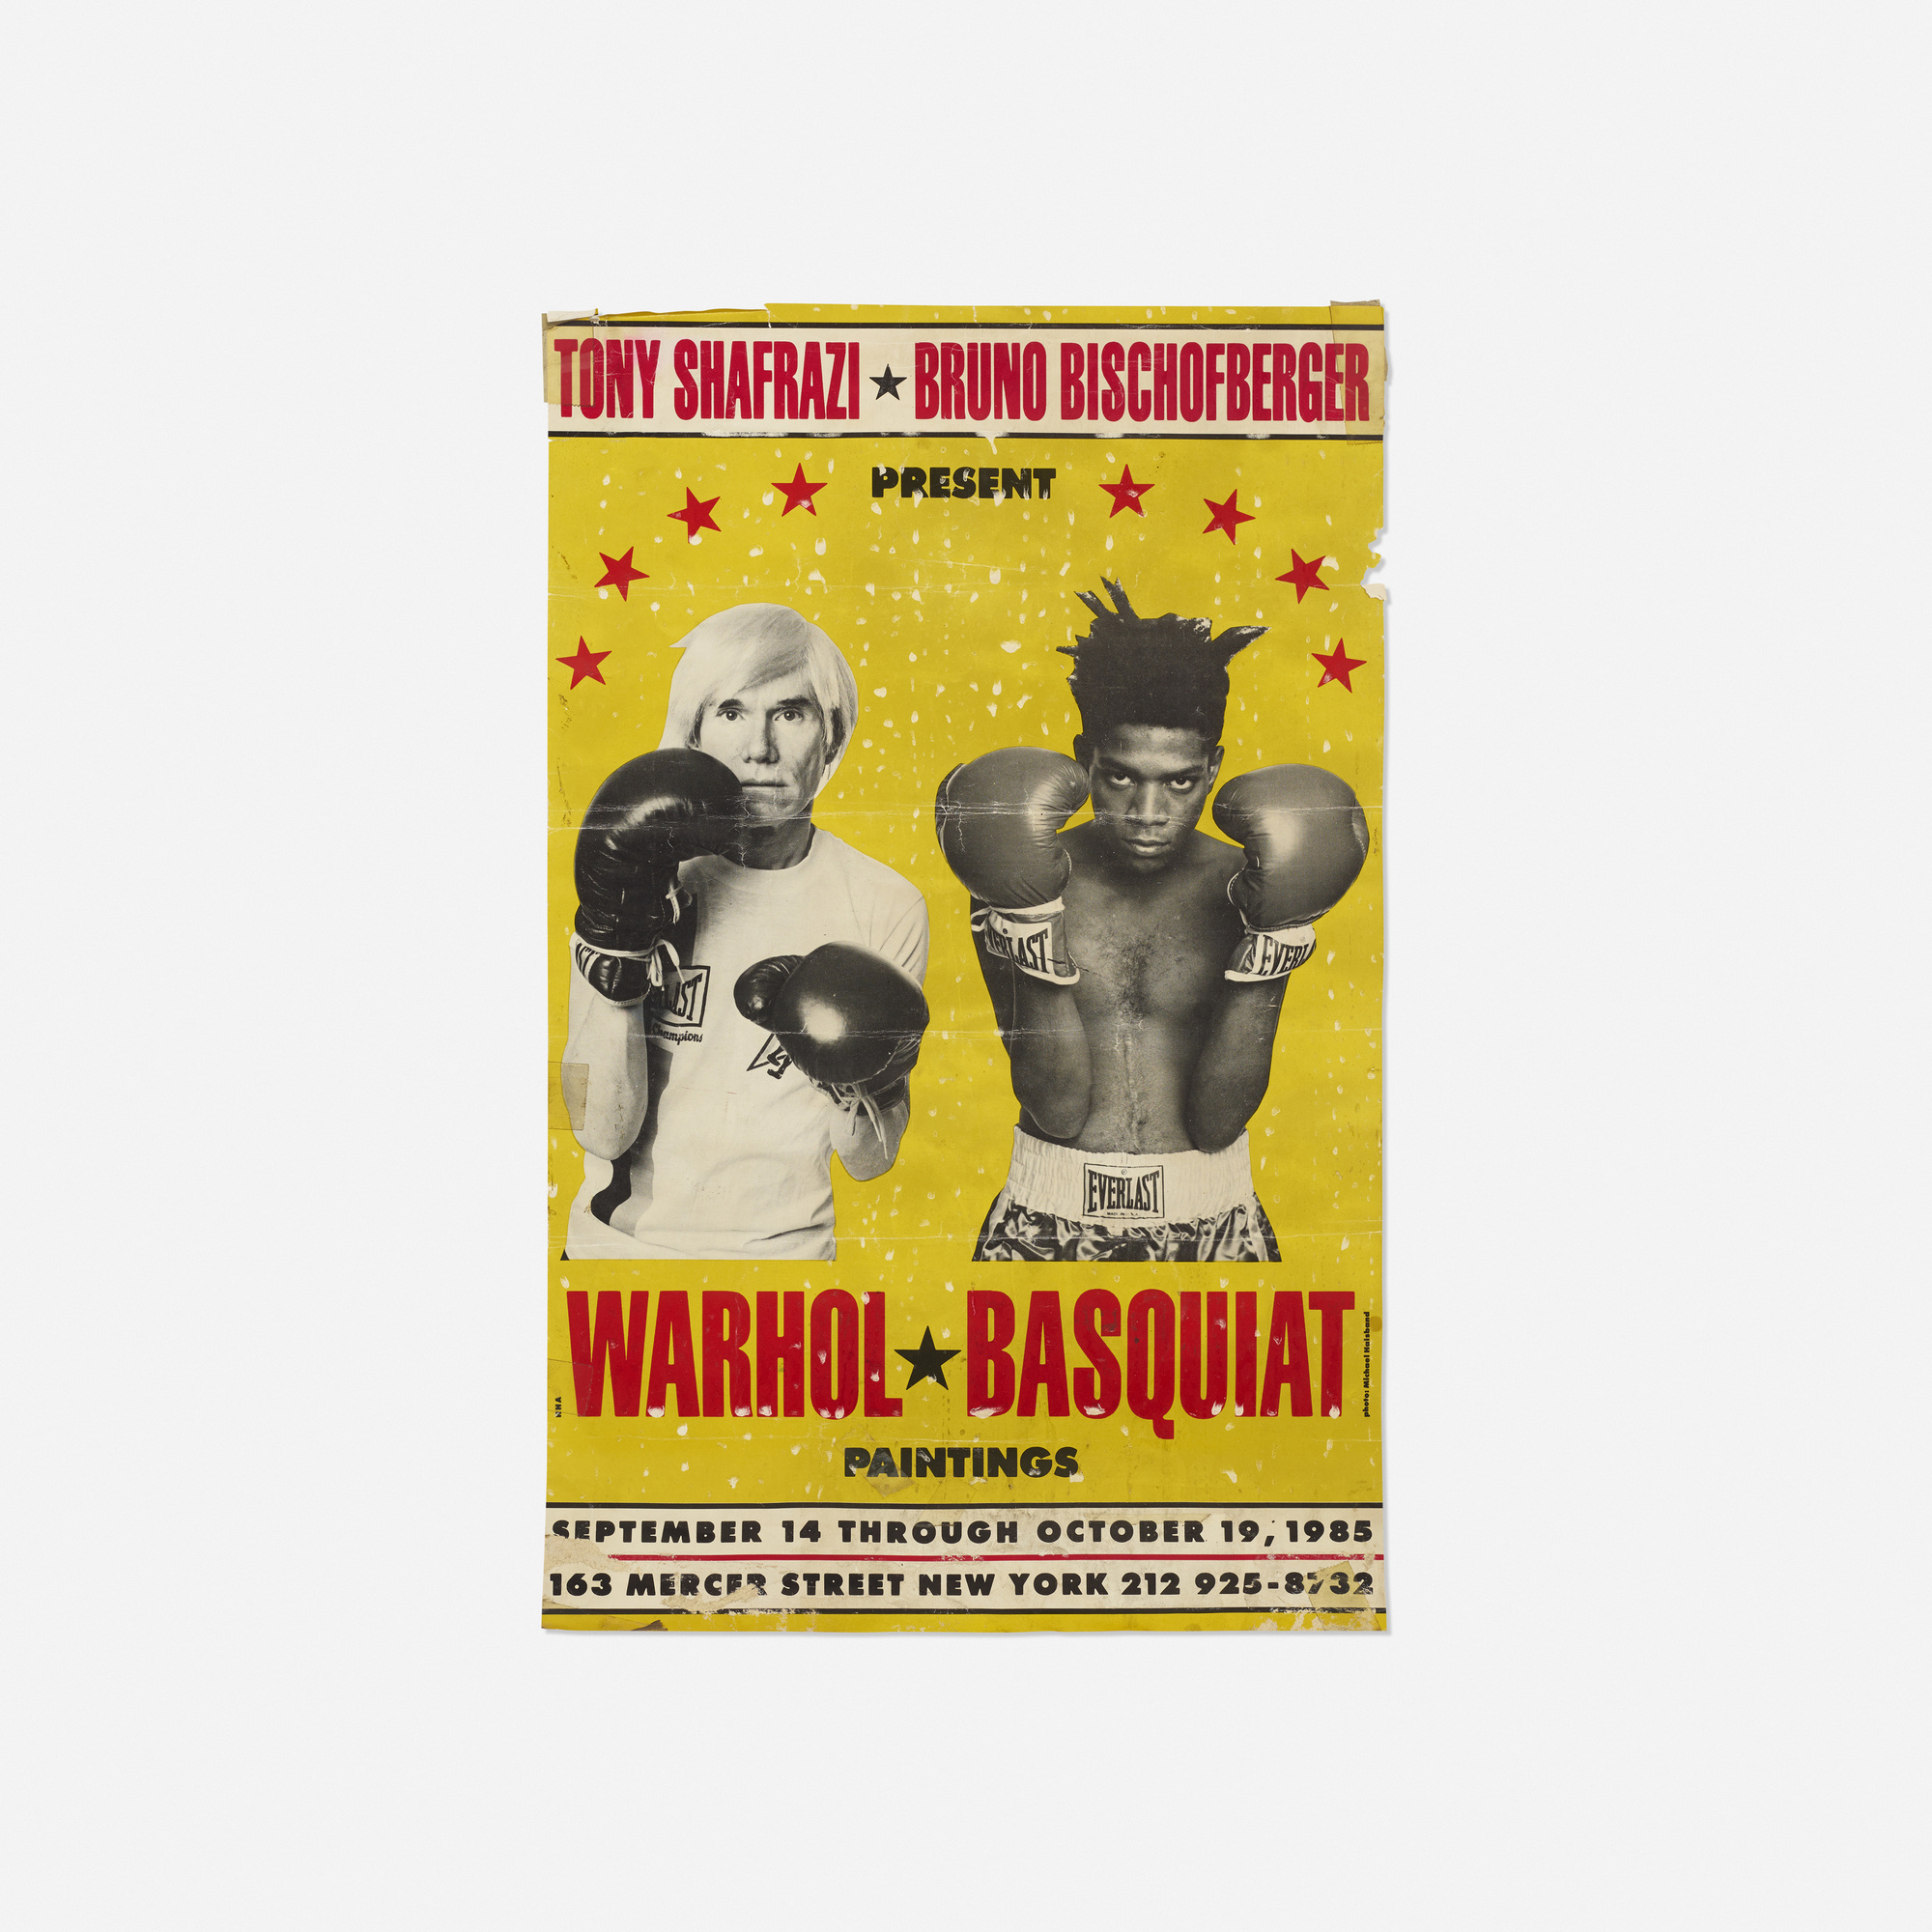 109: ANDY WARHOL AND JEAN-MICHEL BASQUIAT, Warhol/Basquiat Paintings ...